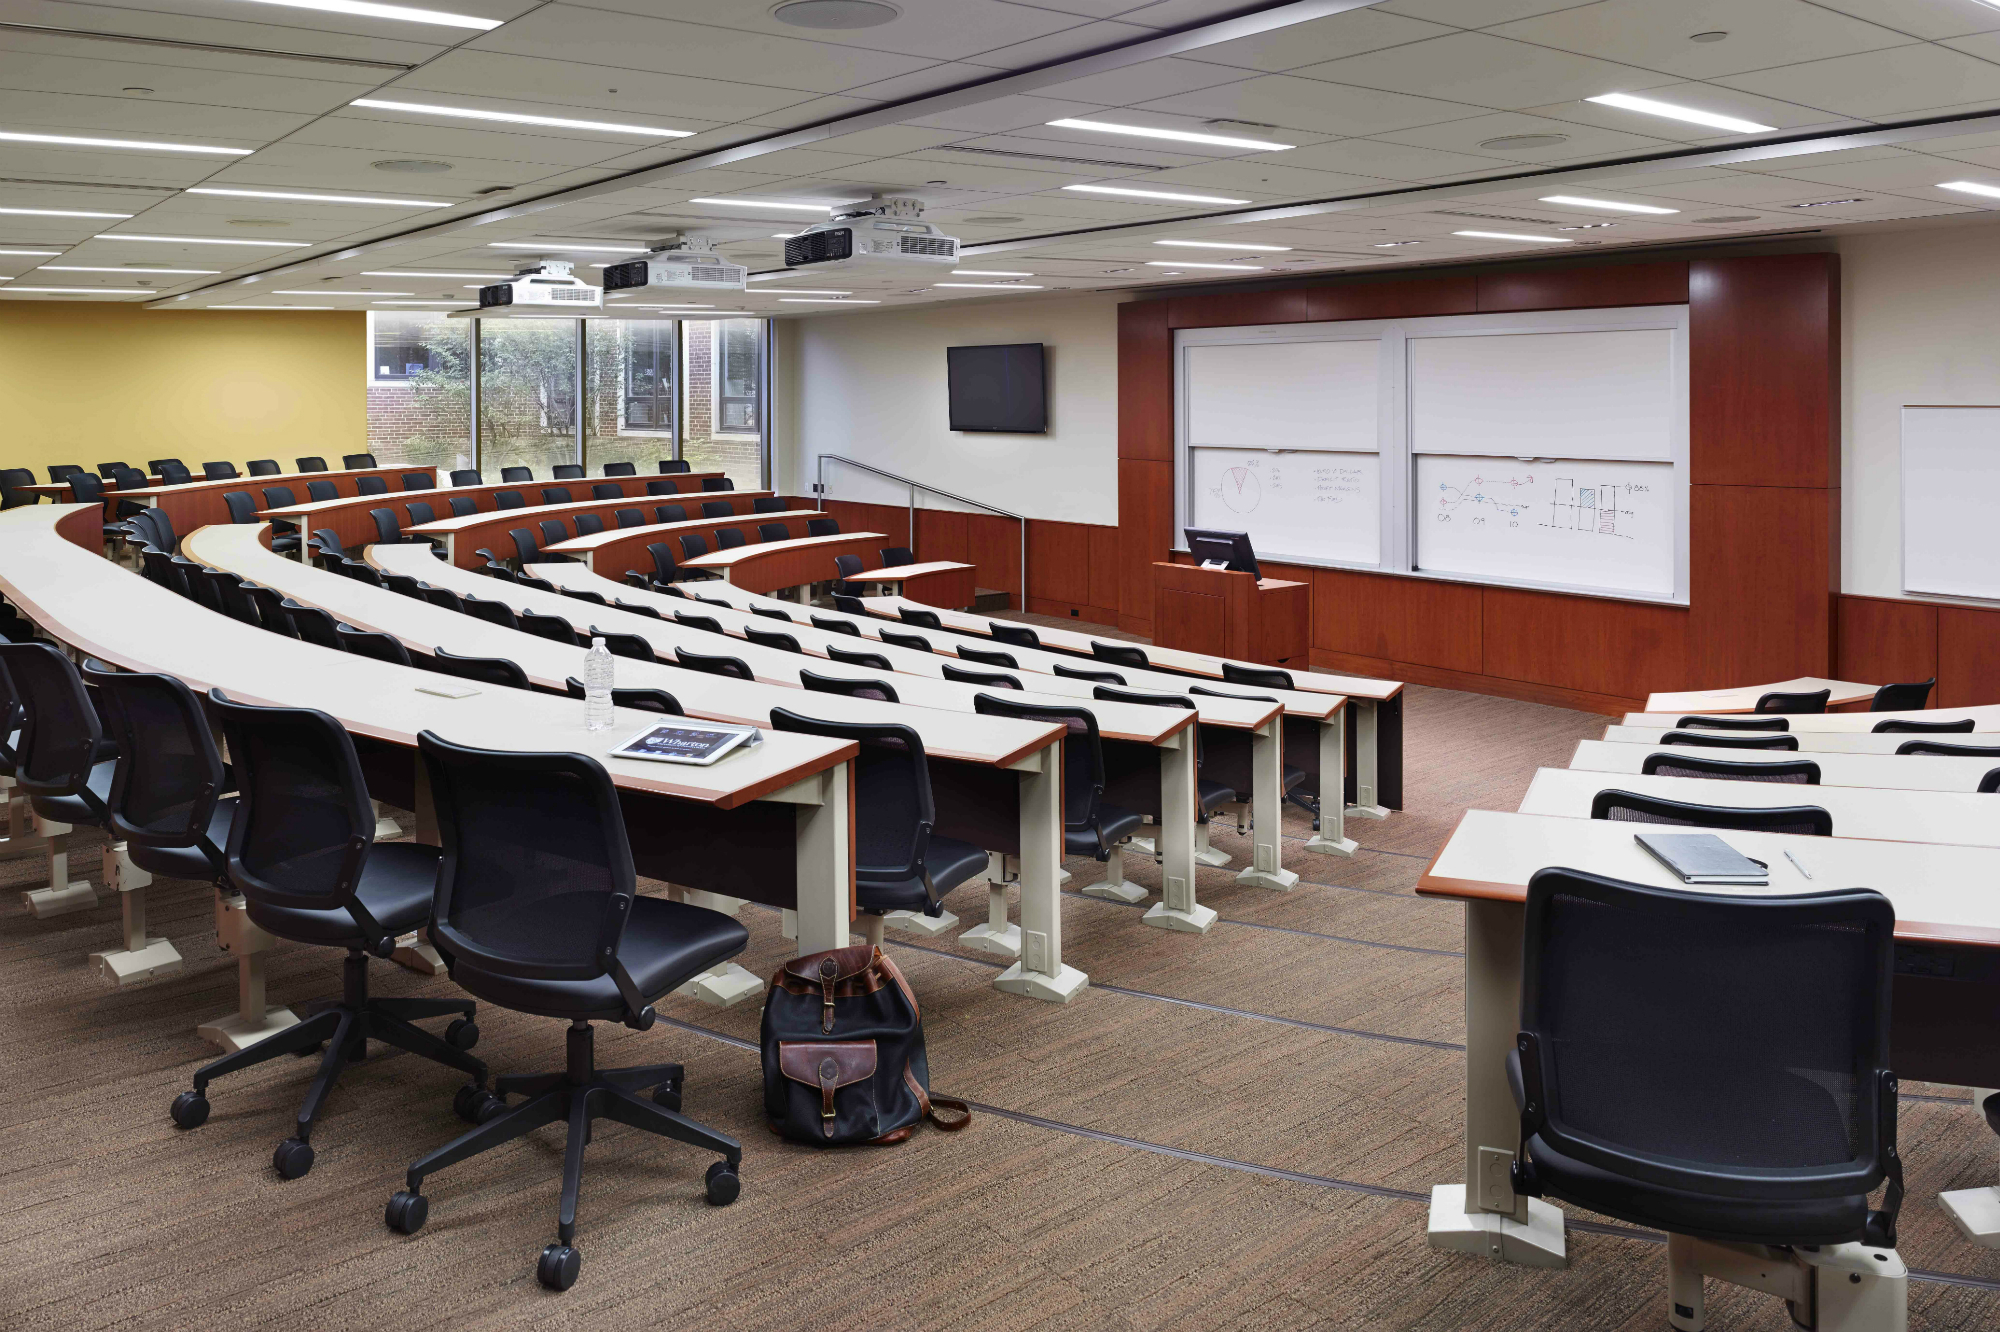 Collaborative Classroom Upenn : Penn projects garner leed gold designations adding to